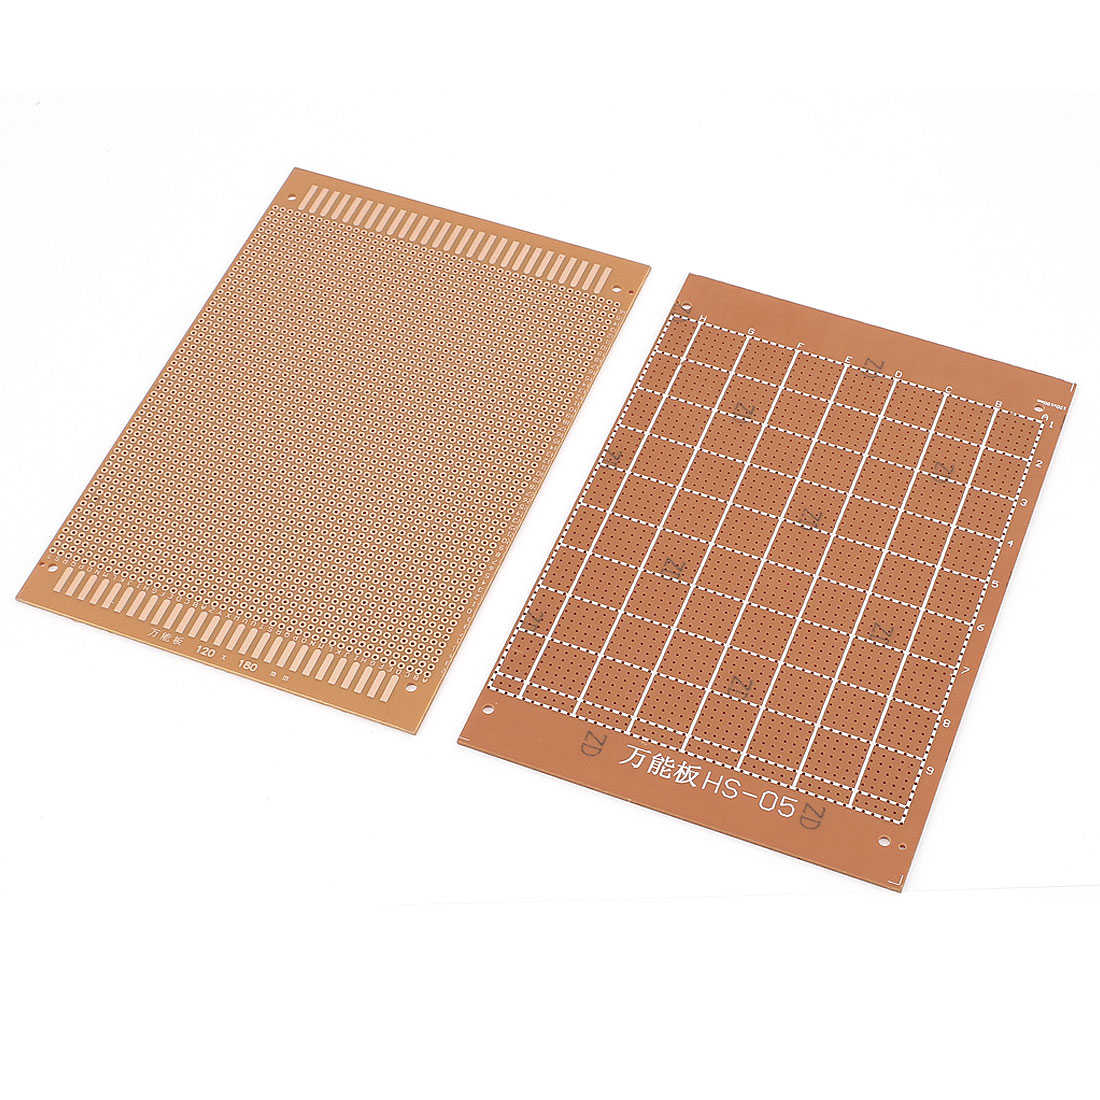 2pcs PCB Printed Circuit Board Prototype Breadboard Stripboard 18cm x 12cm